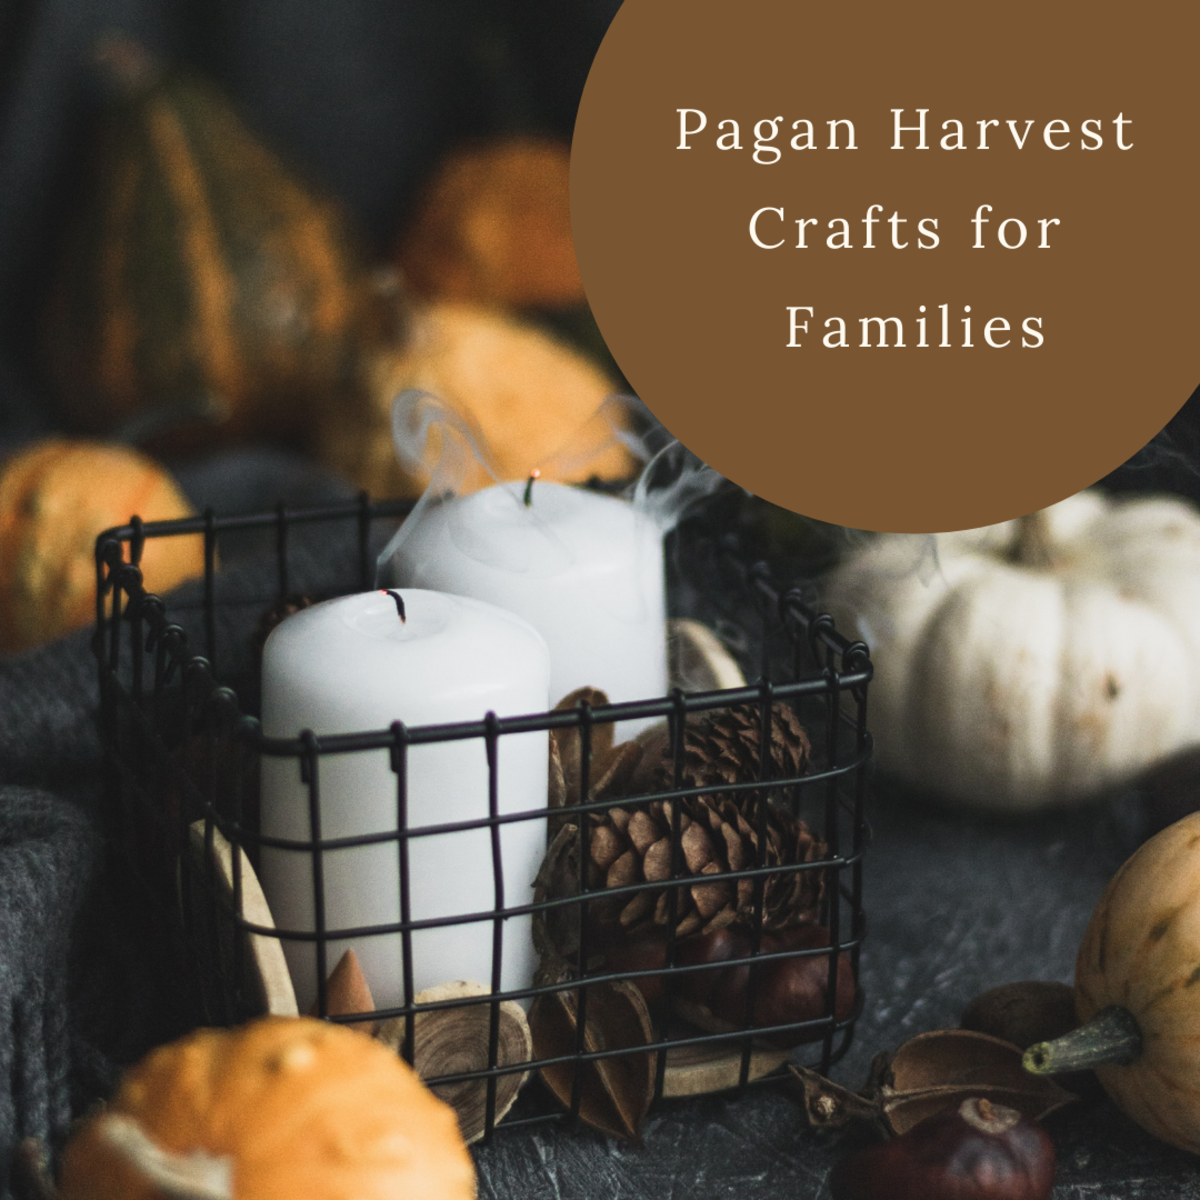 Doing crafts as a family makes celebrating all the more festive!